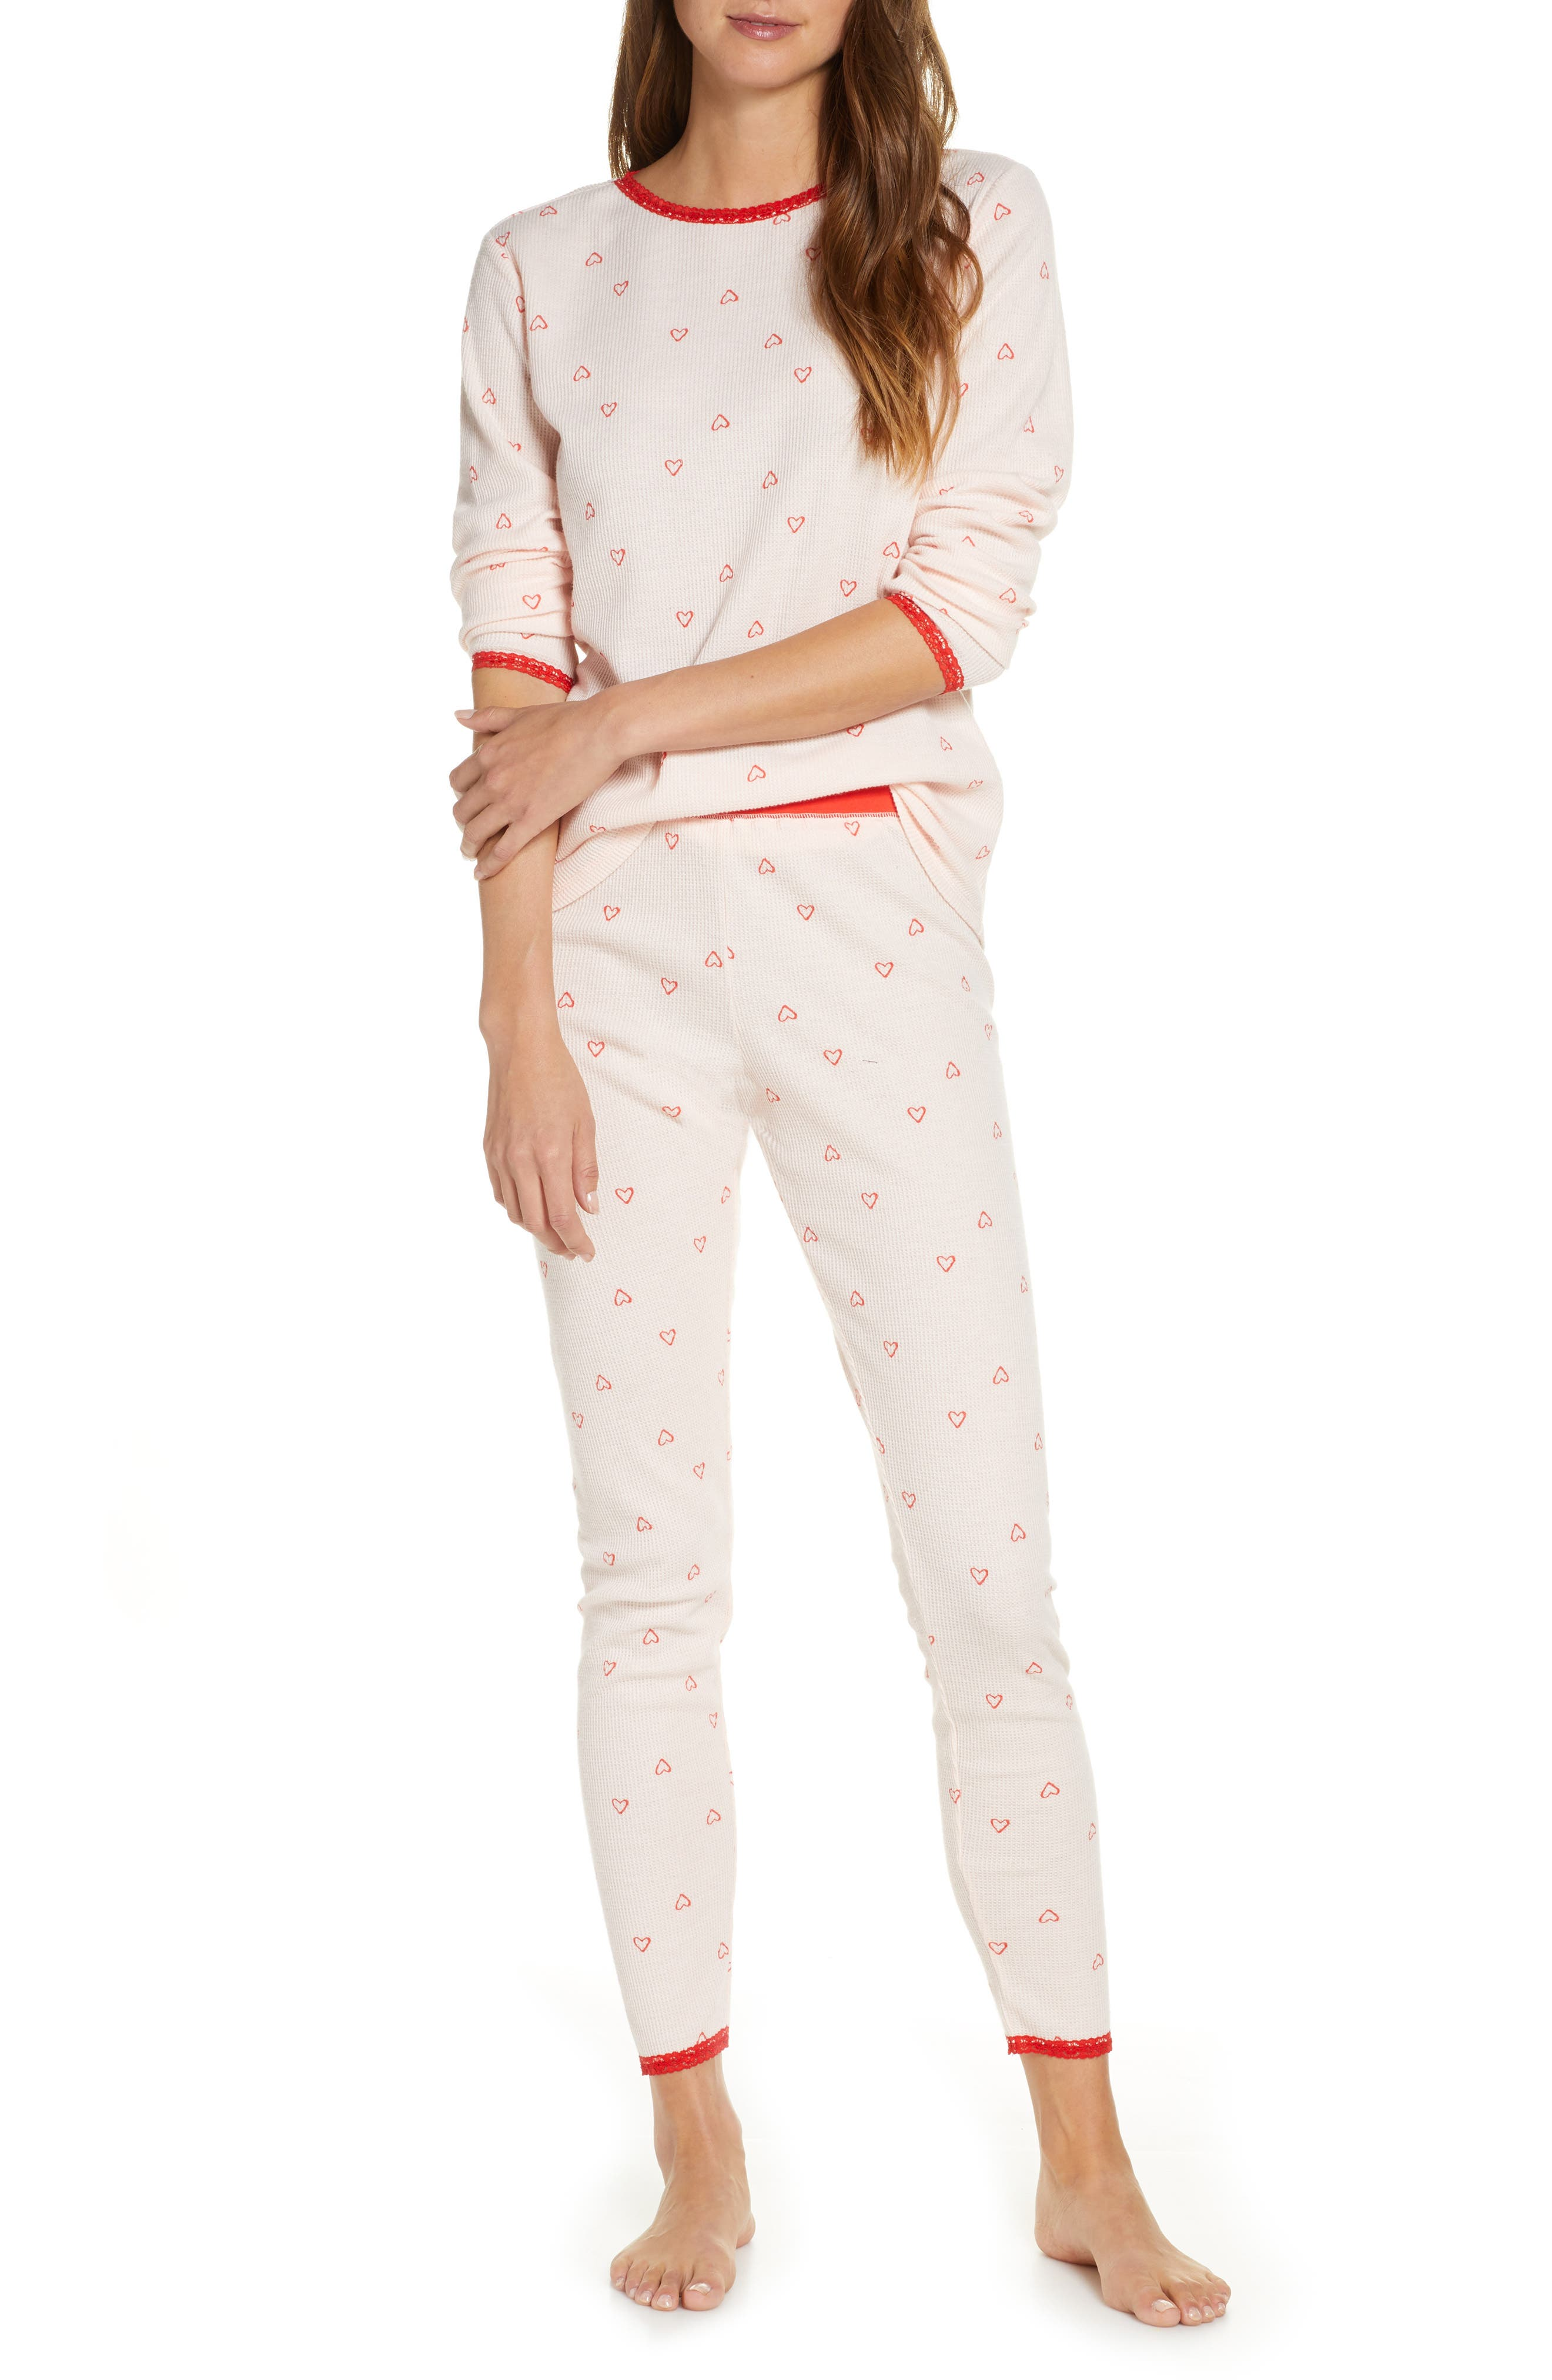 Rachel Parcell Thermal Pajamas (Nordstrom Exclusive)